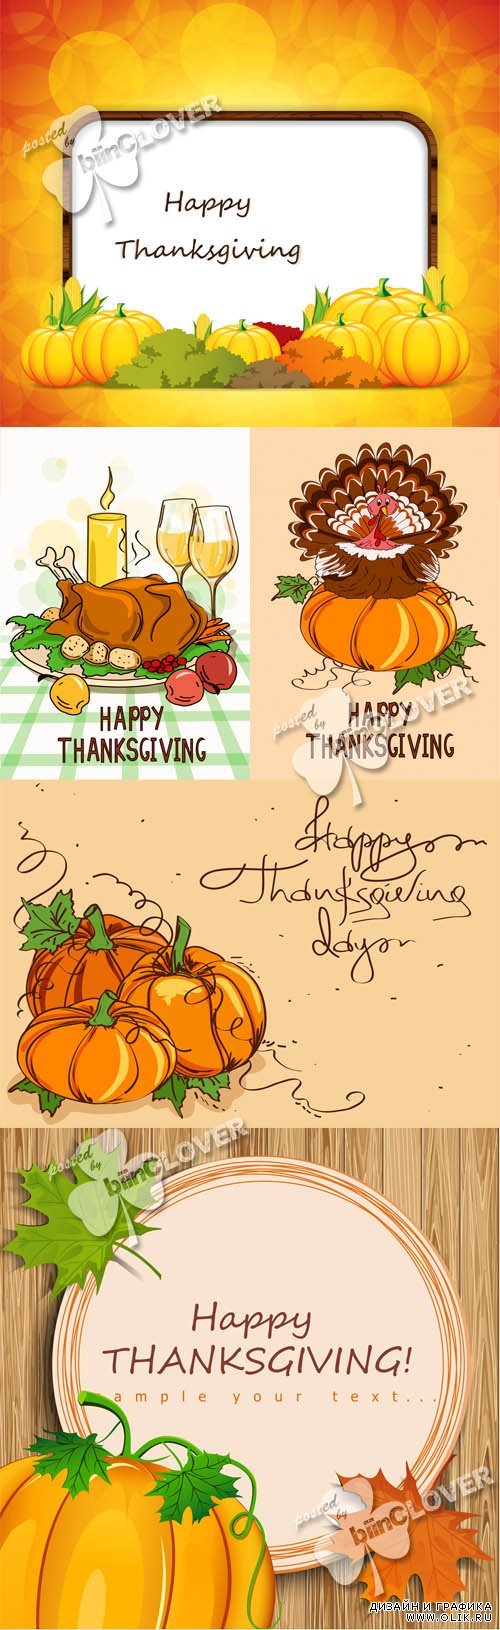 Thanksgiving cards 0513